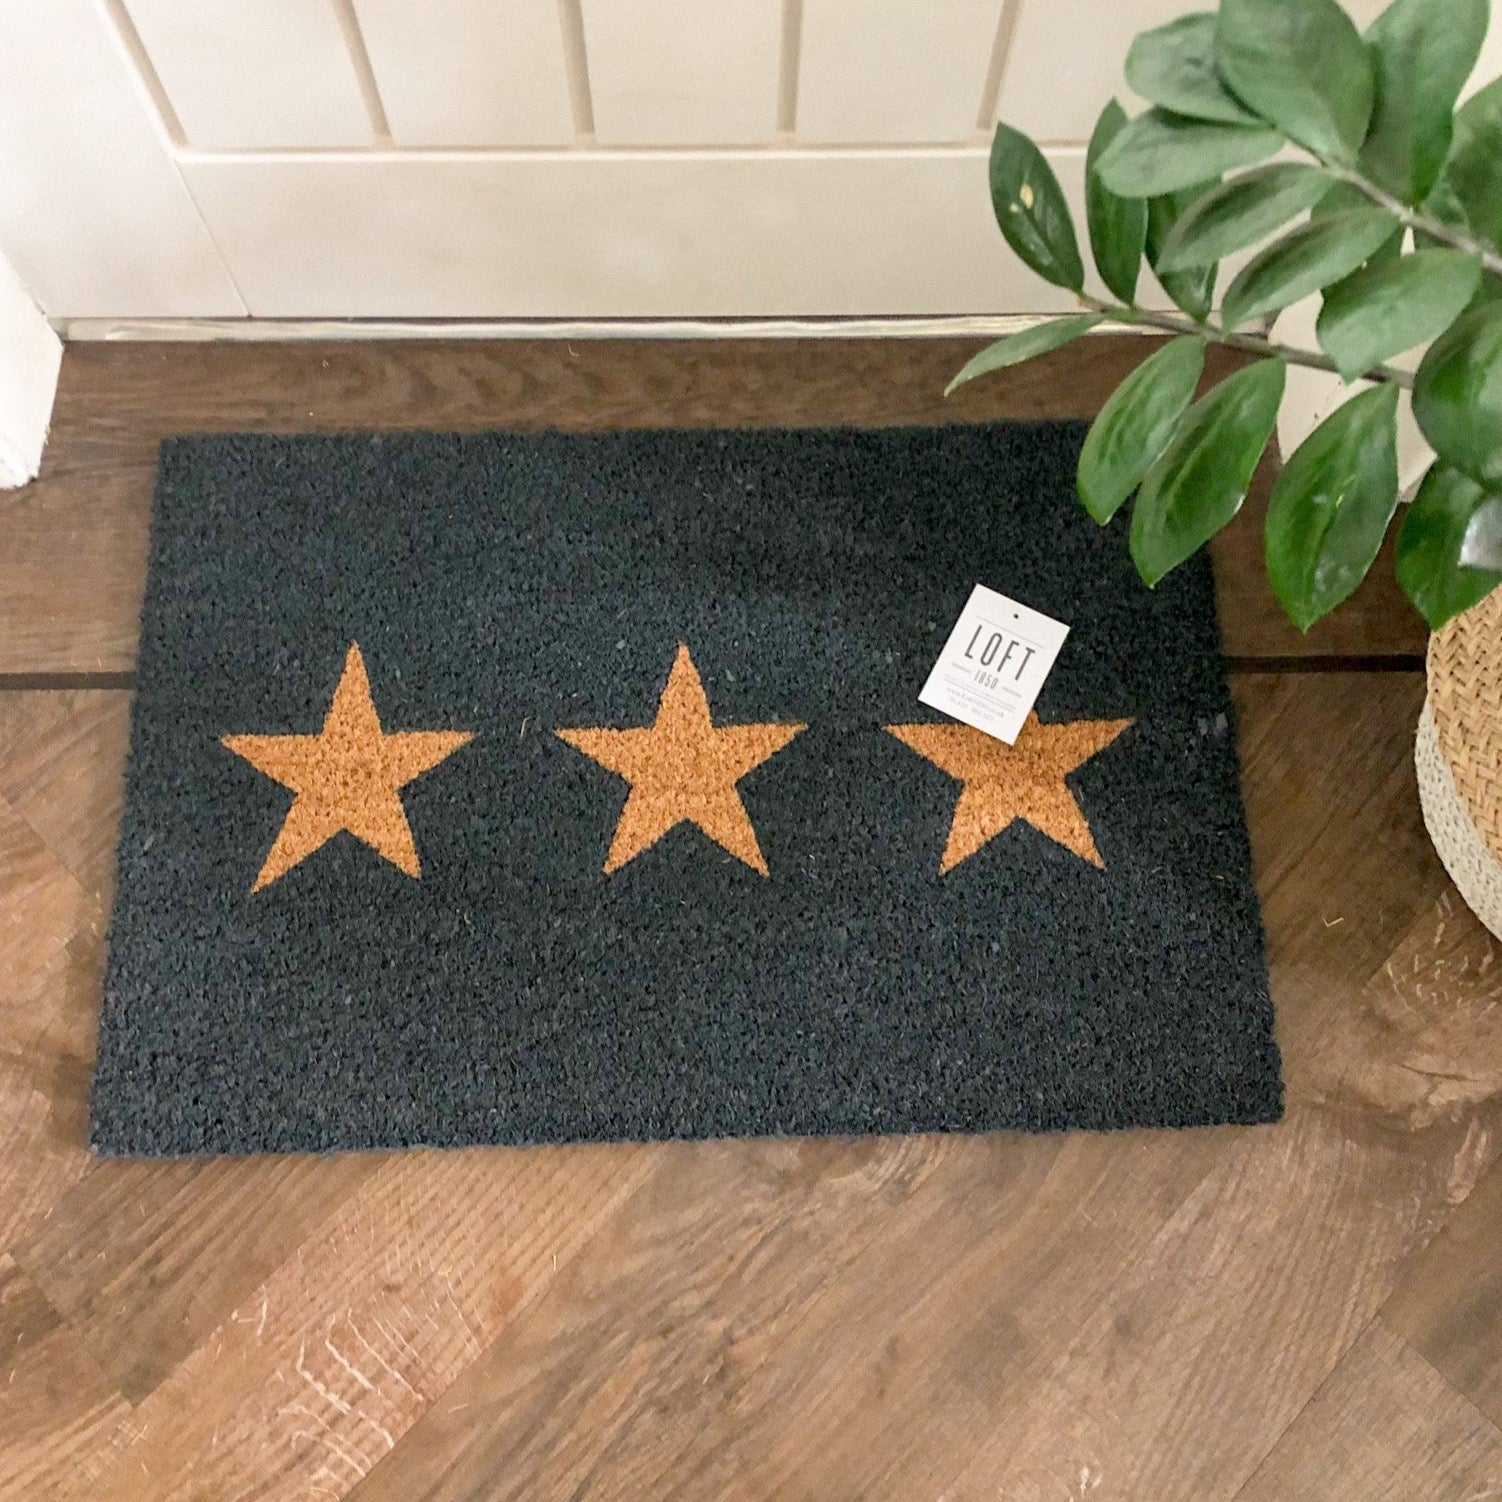 Small 3 Star Doormat in Charcoal